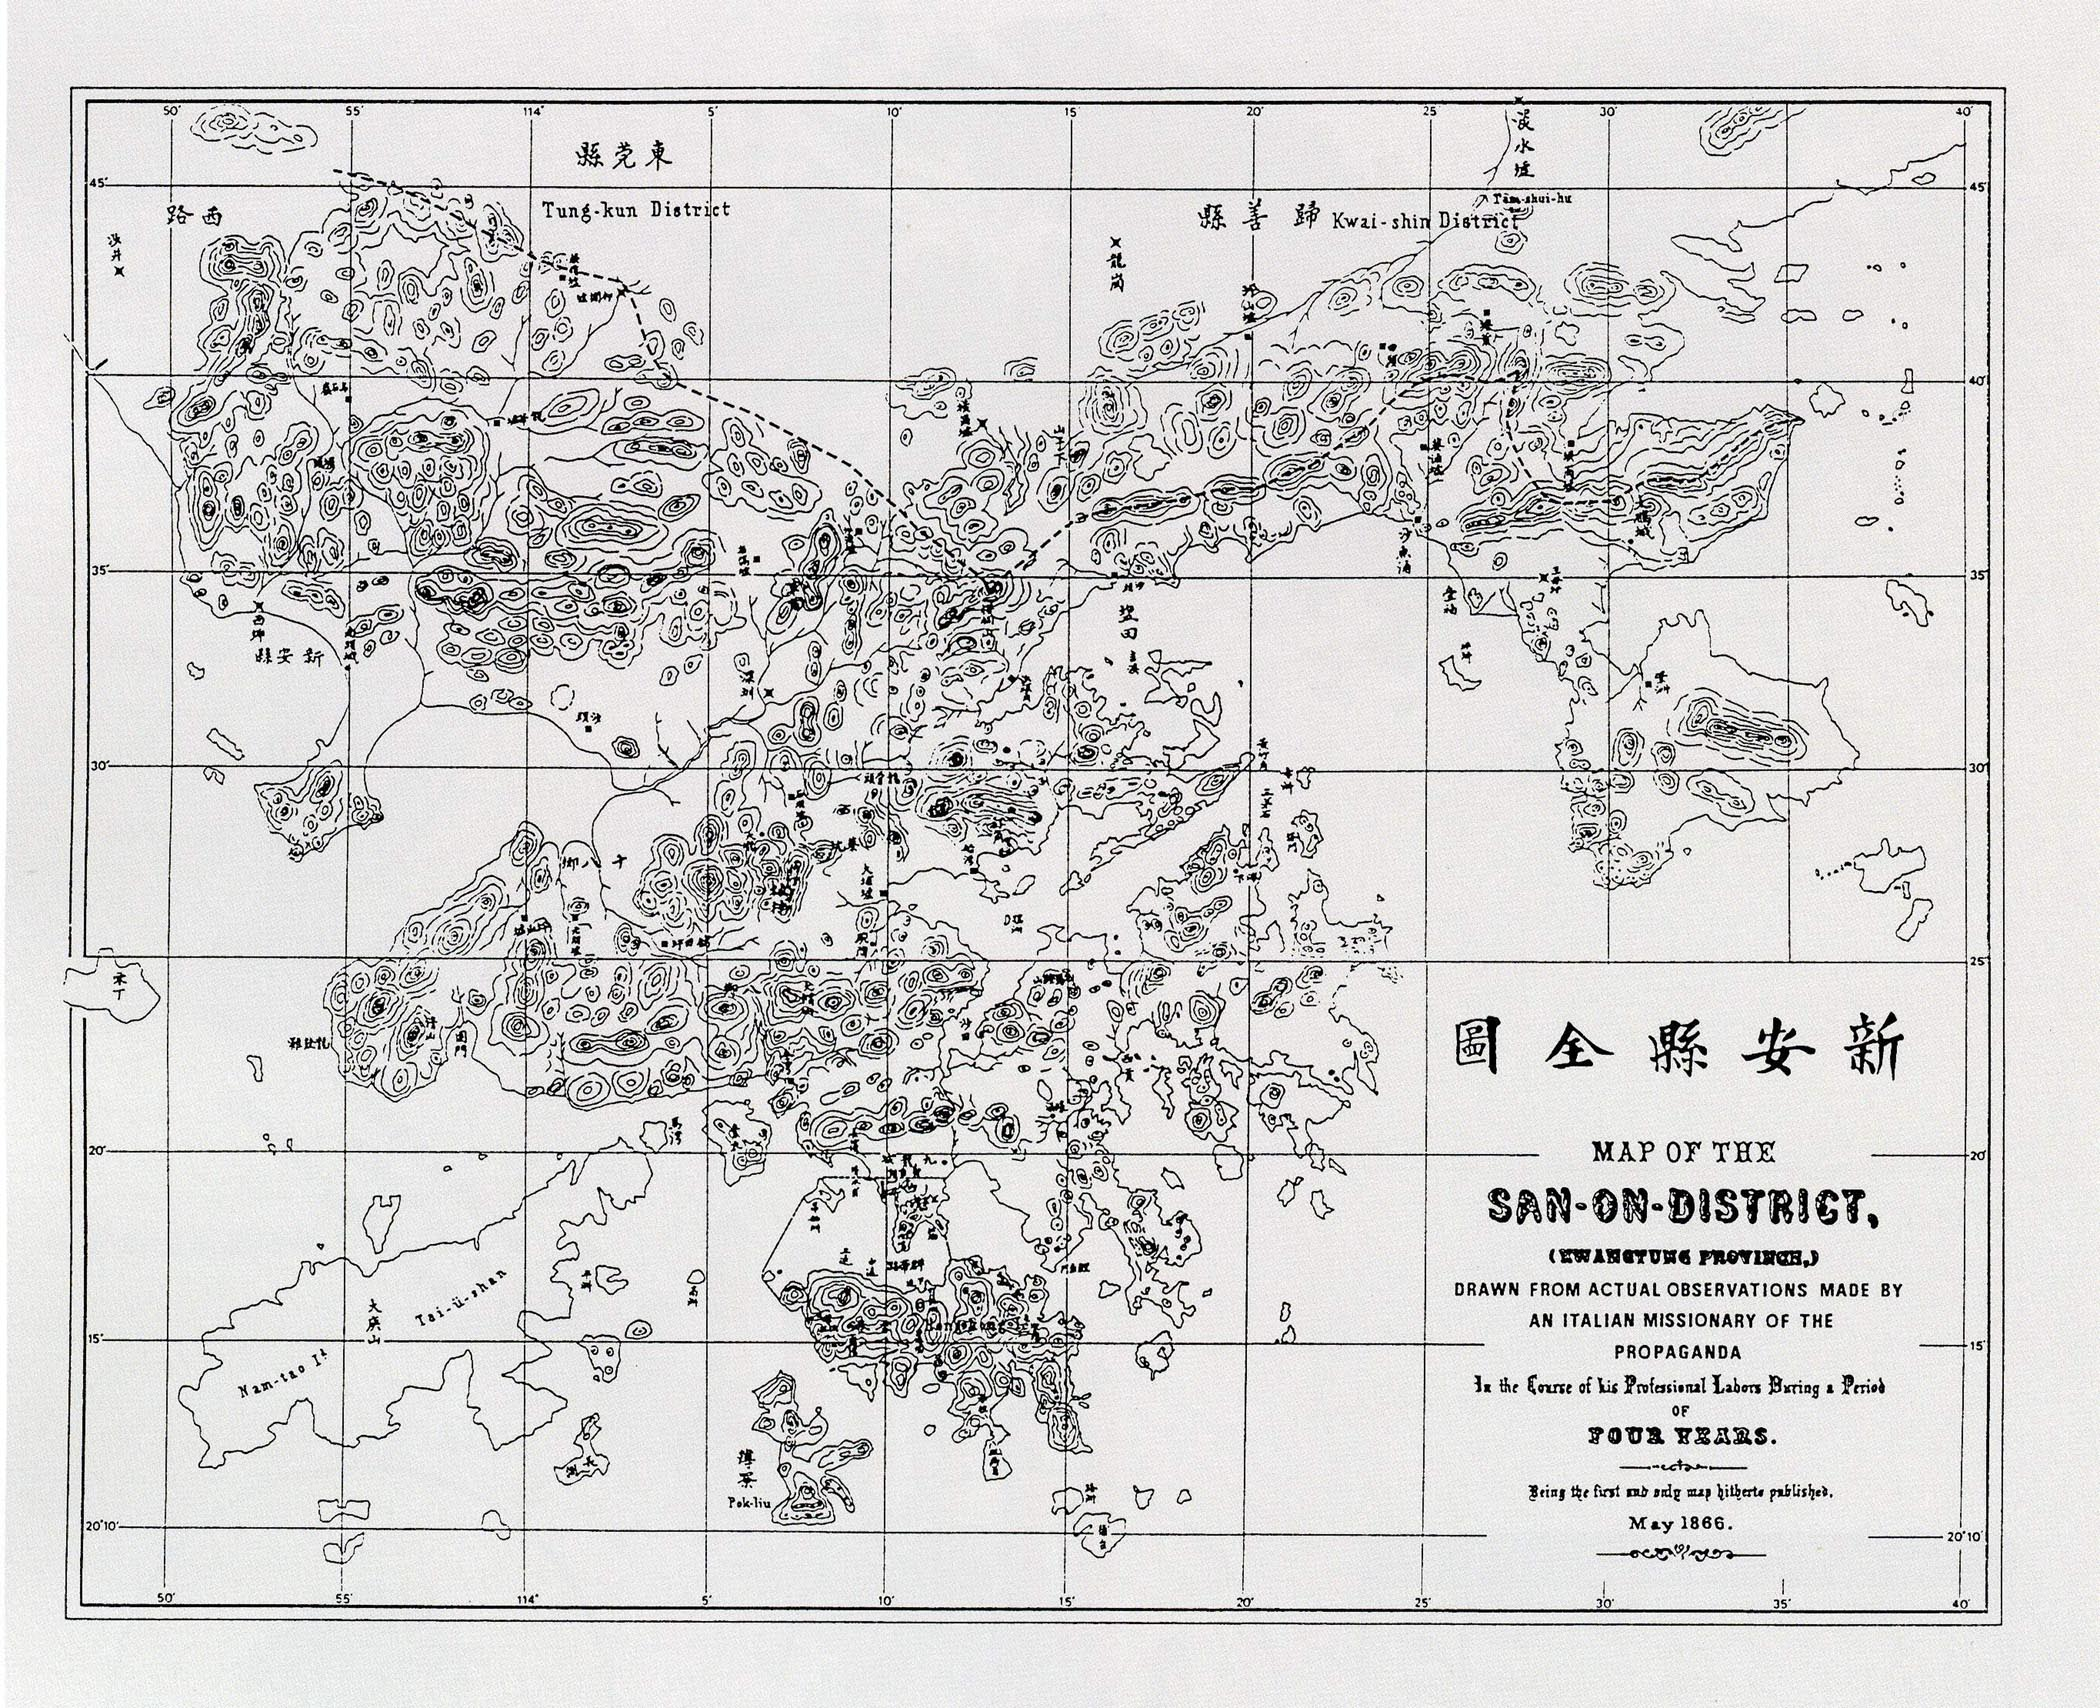 Map of Bao'an (Po'On) County created by Italian missionary Simeon Volonteri in 1866. It shows that Hong Kong used to be a part of Bao'an (Po'On) County in ancient China. This is now Shenzhen (in Kwangtung Province, present-day Guangdong).